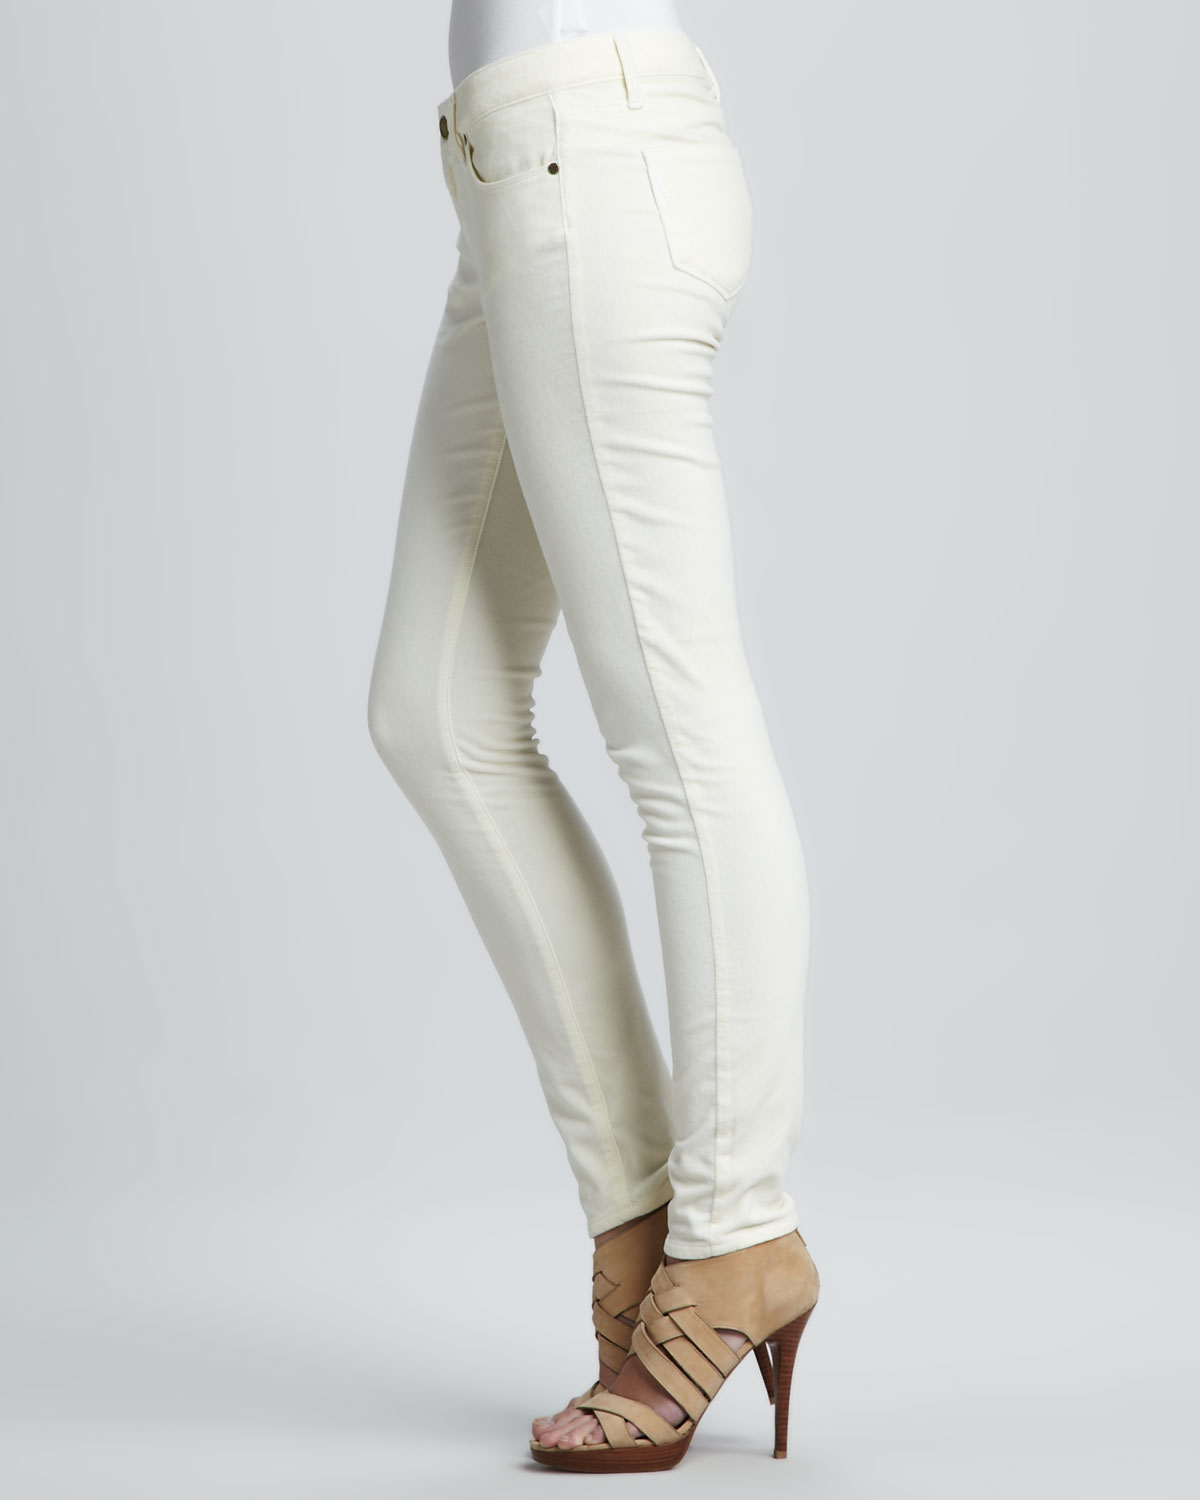 Drop Crotch Jeans For Women